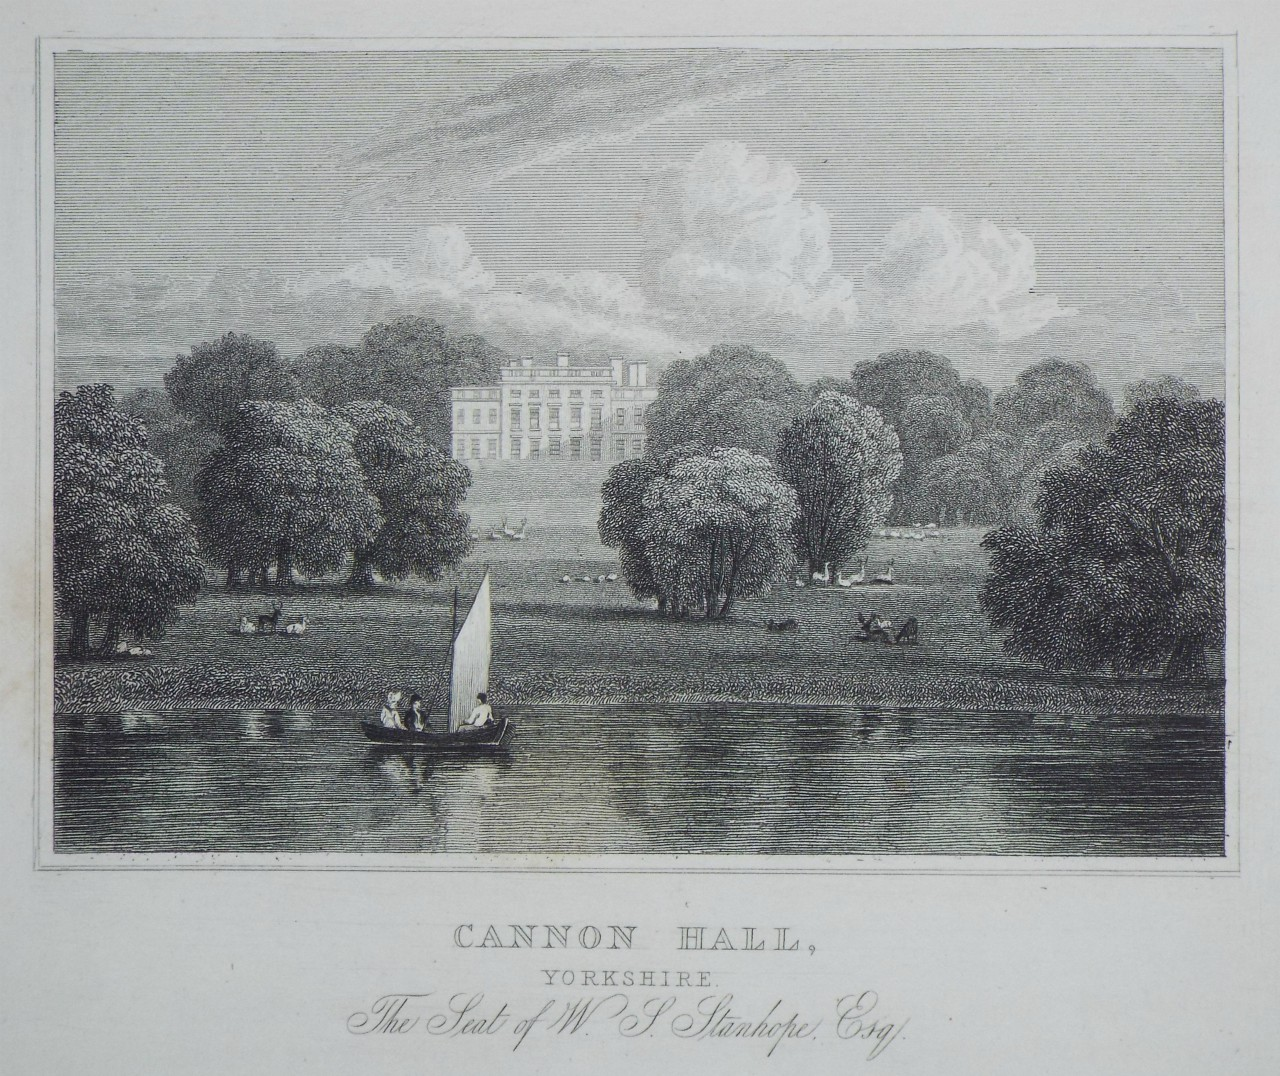 Print - Cannon Hall, Yorkshire. The Seat of W. S. Stanhope, Esq.  - Hay